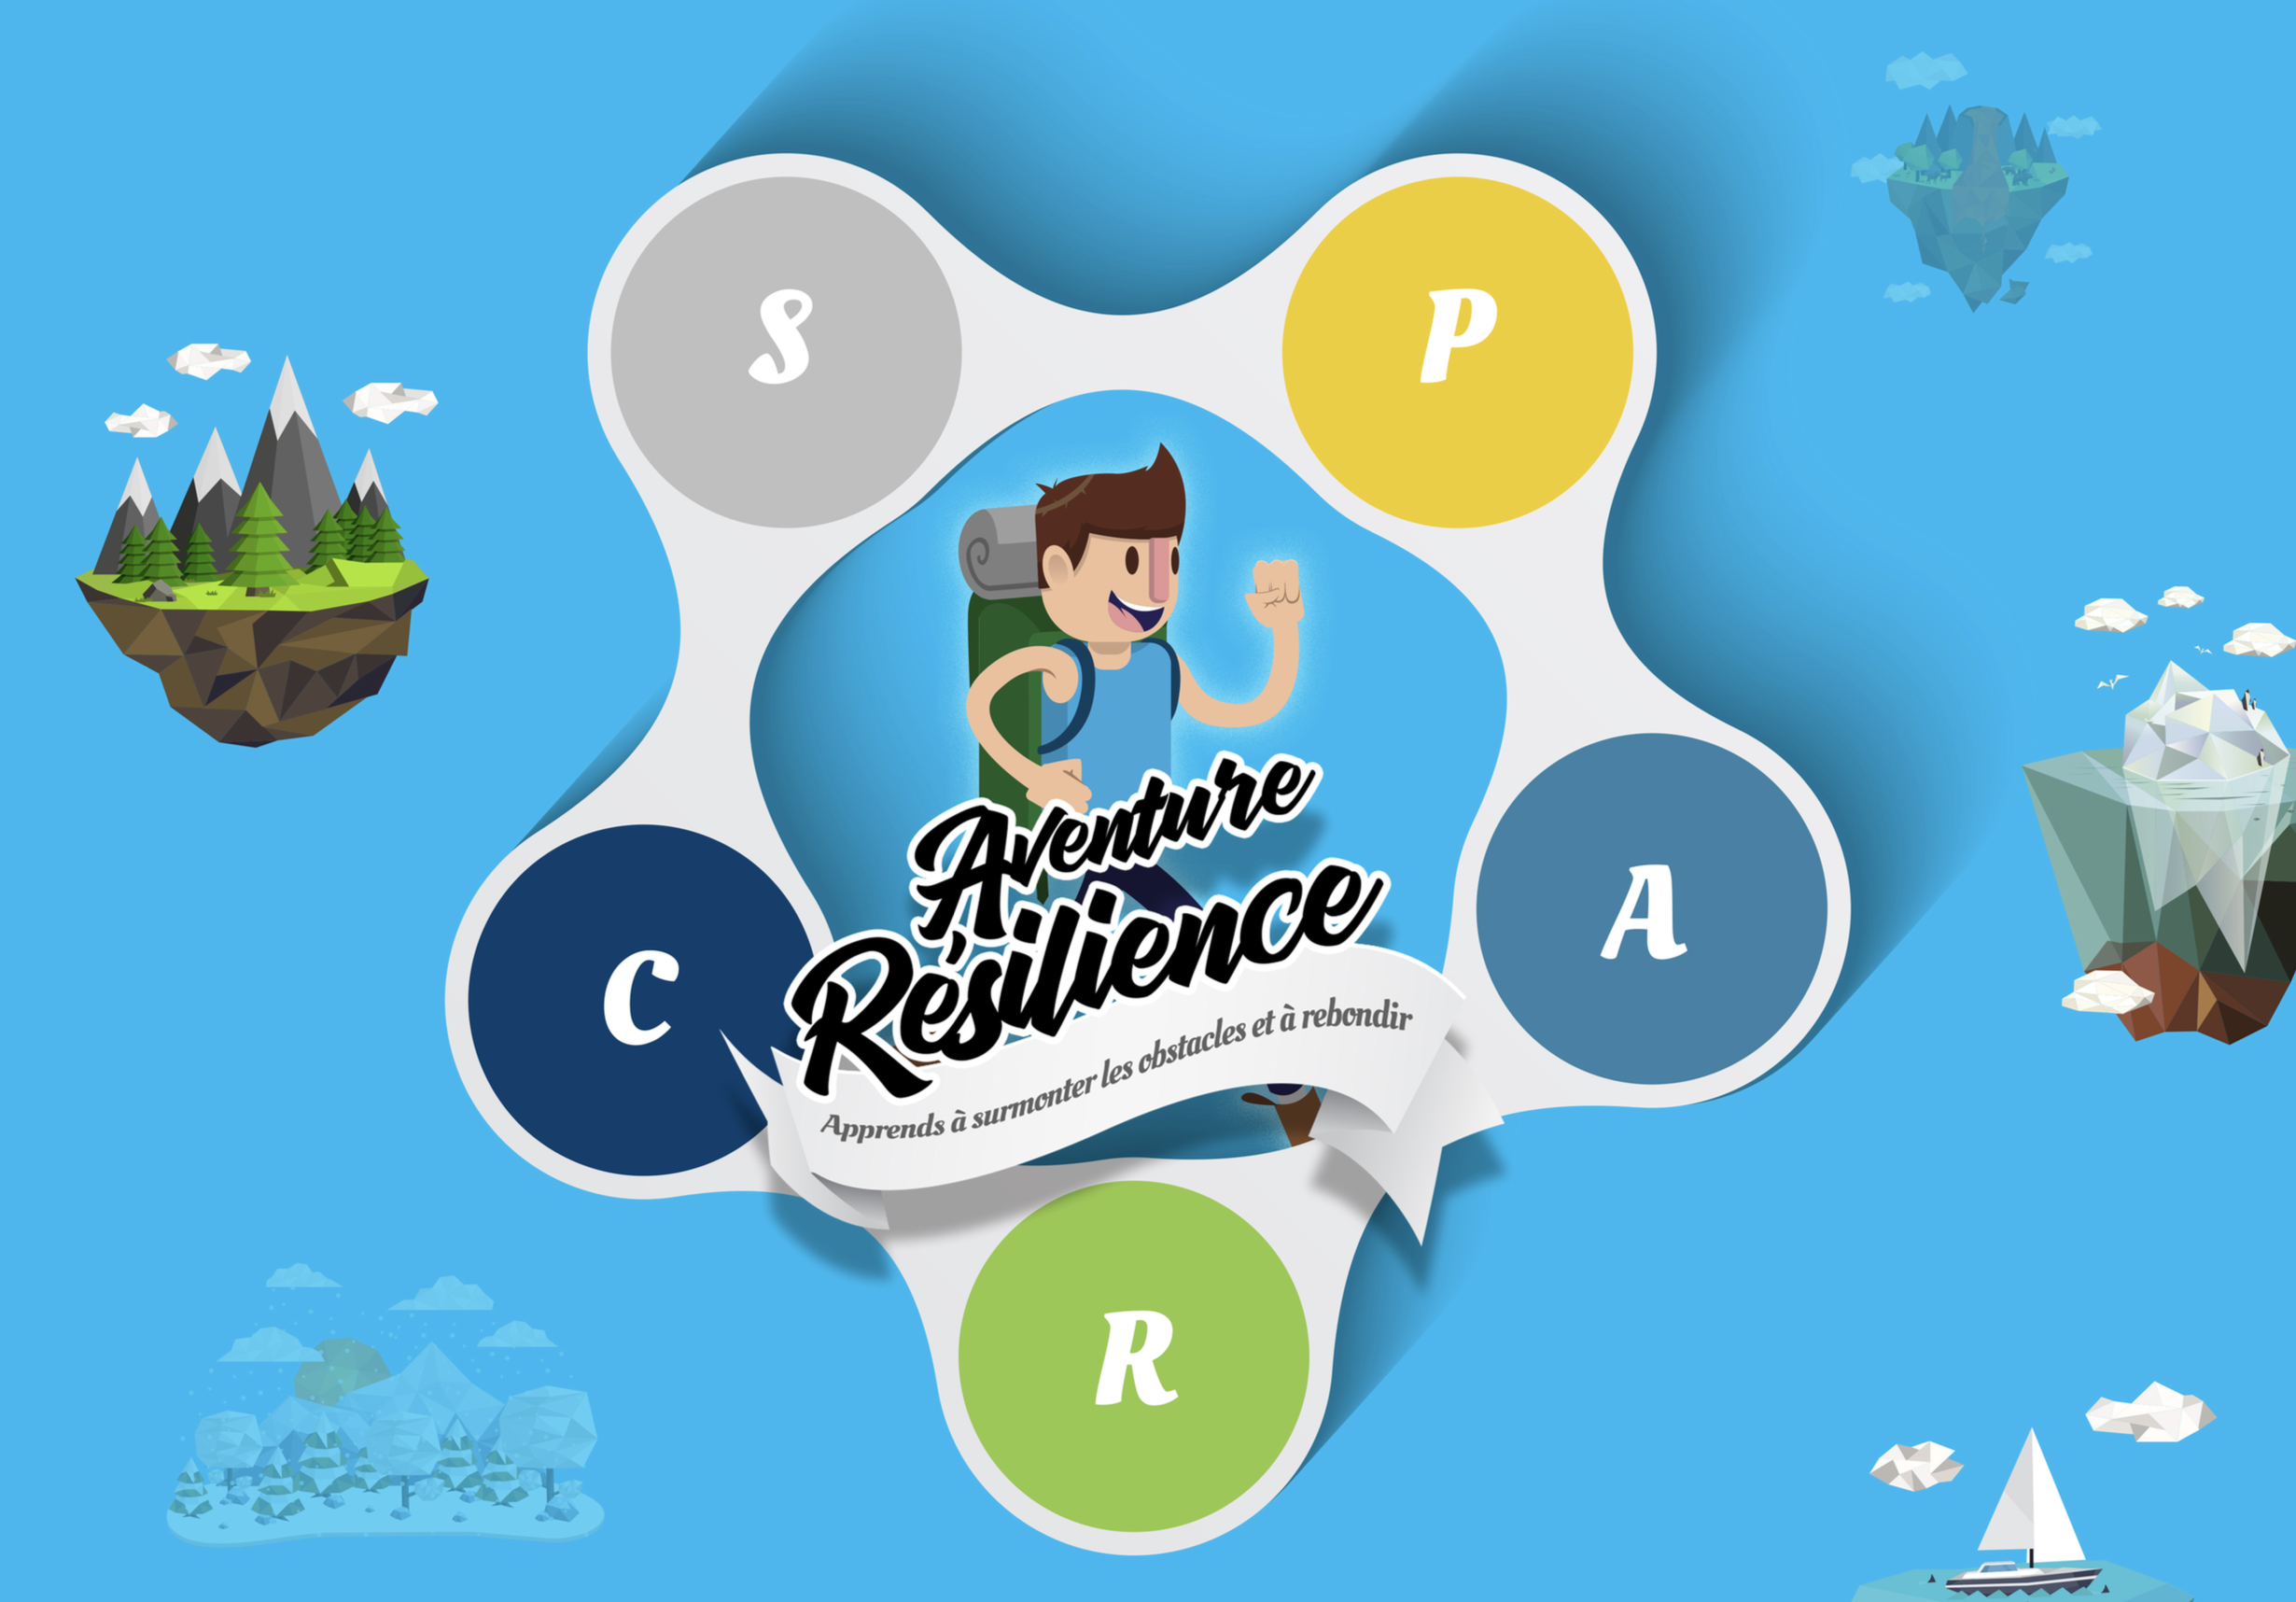 Your Resilience Roadtrip